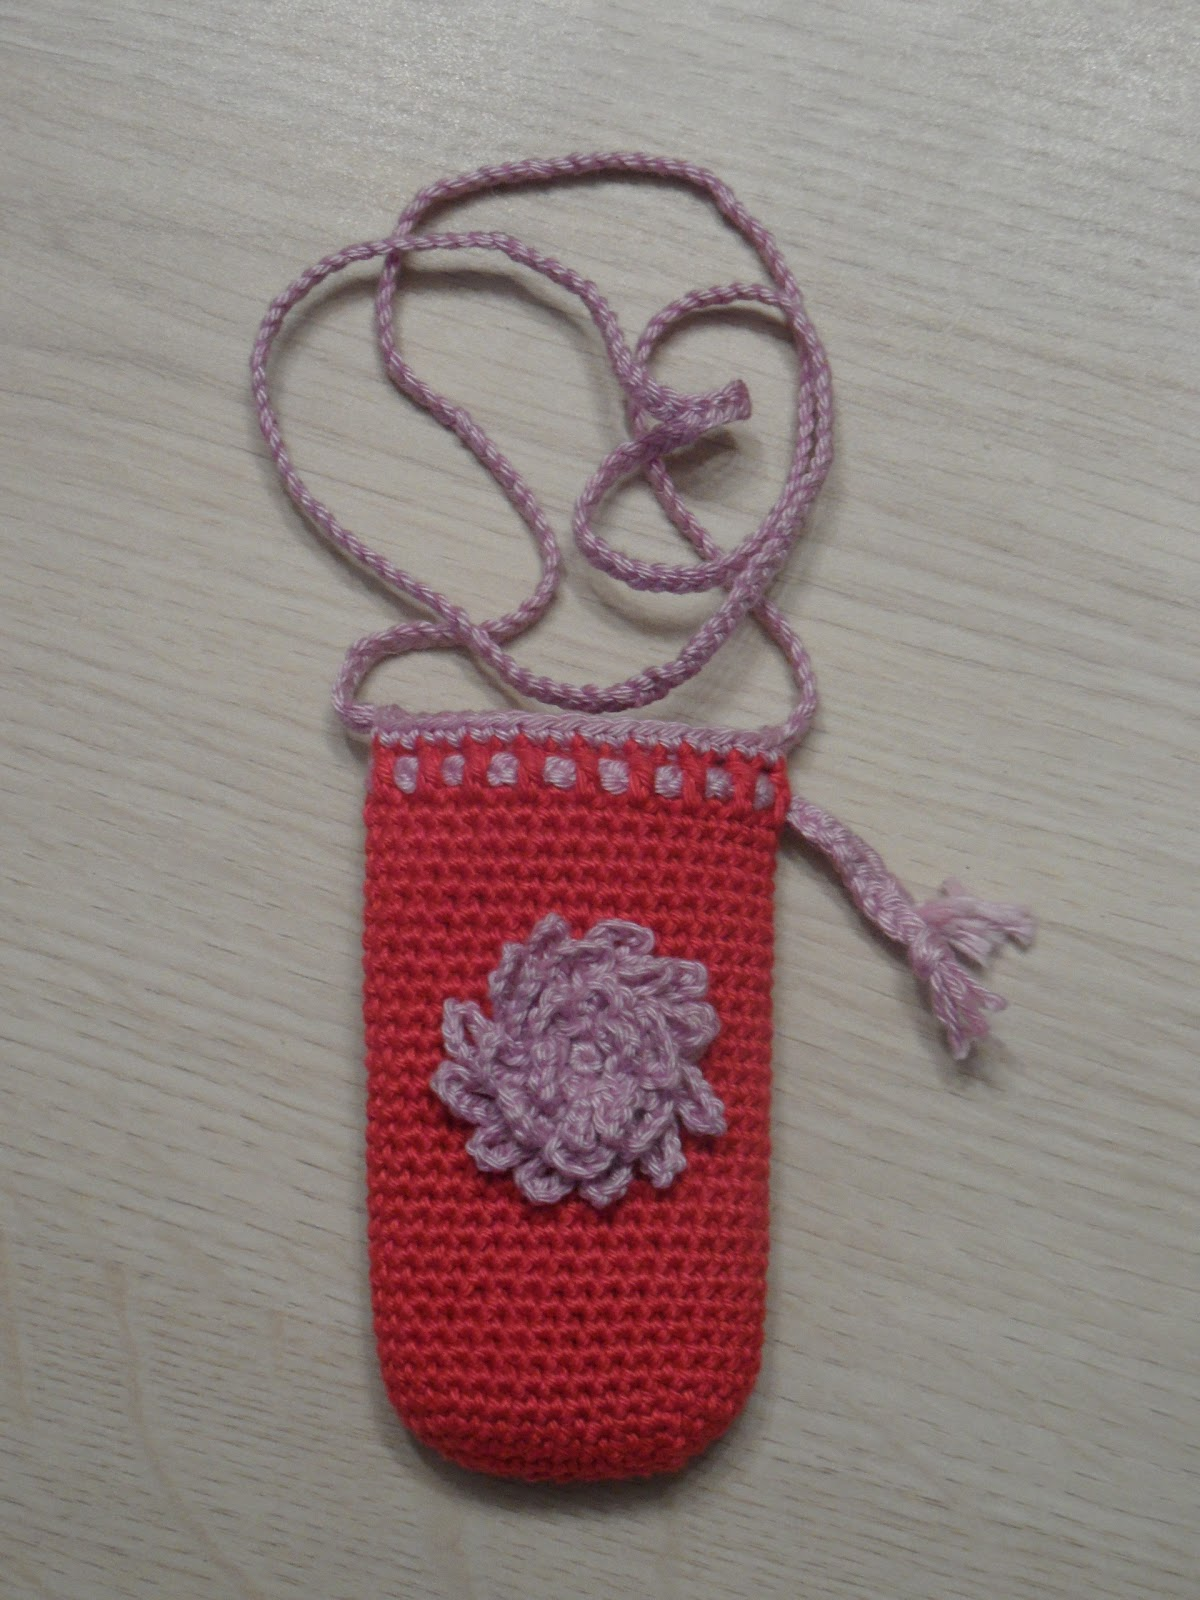 May 19, · #crochet cell phone holder or mini wallet, Part 1 Step by step instructions for cell phone case. #crochet - cell phone case/mini purse, I-pod case All Crafts Channel. BAG-O-DAY CROCHET.